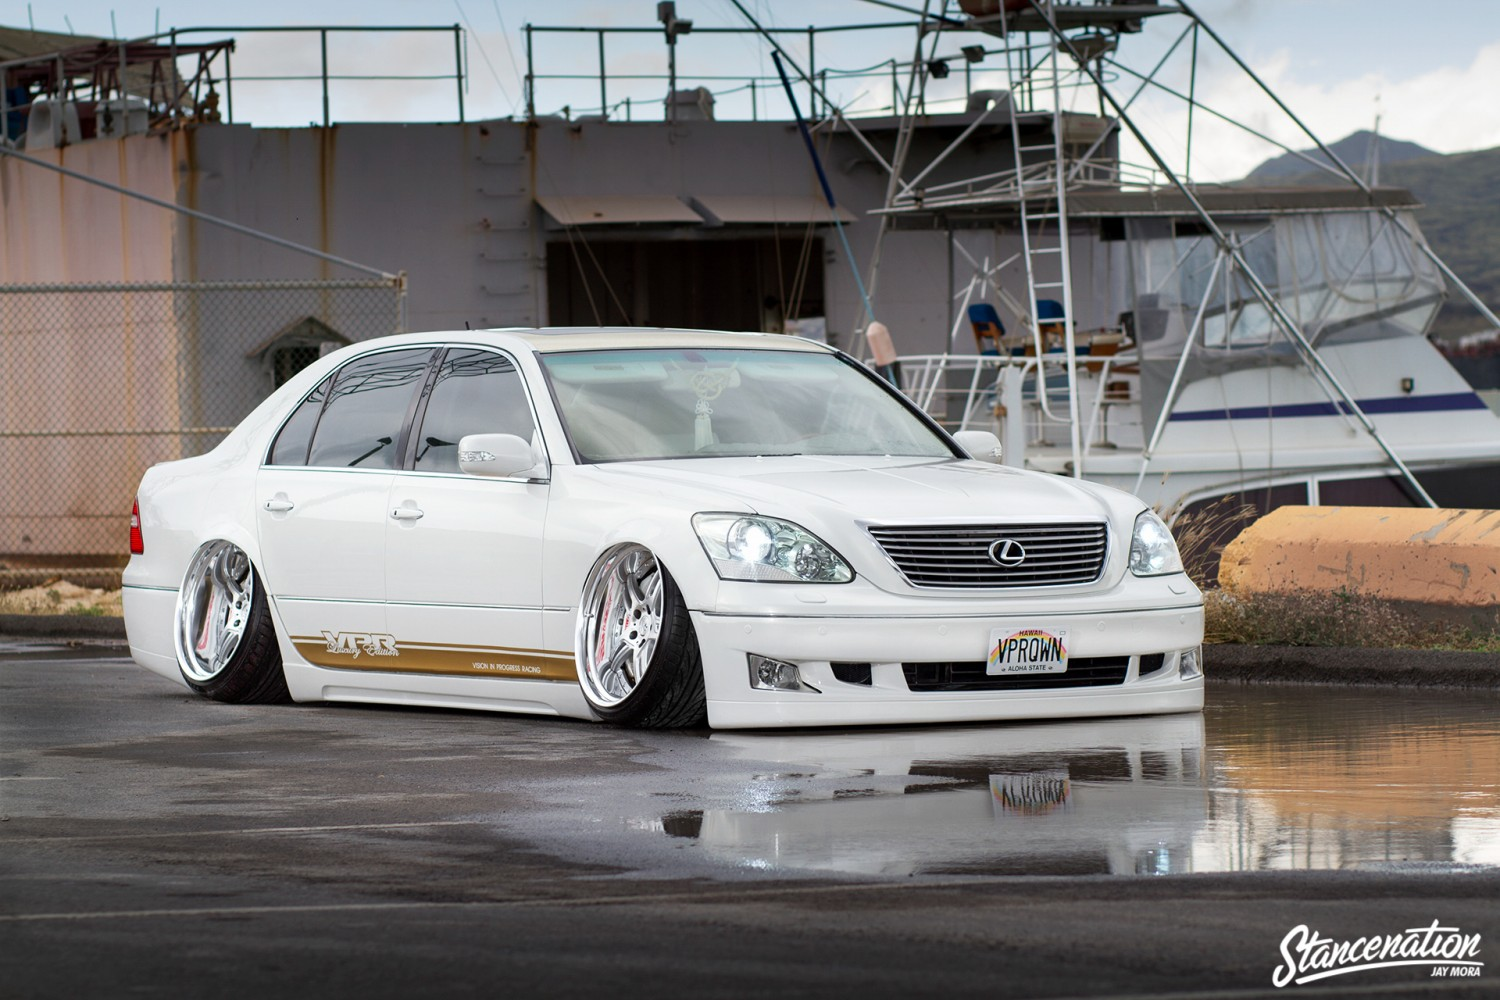 Hawaii Five Ohhhhhh The Vpr Lexus Ls430 Stancenation